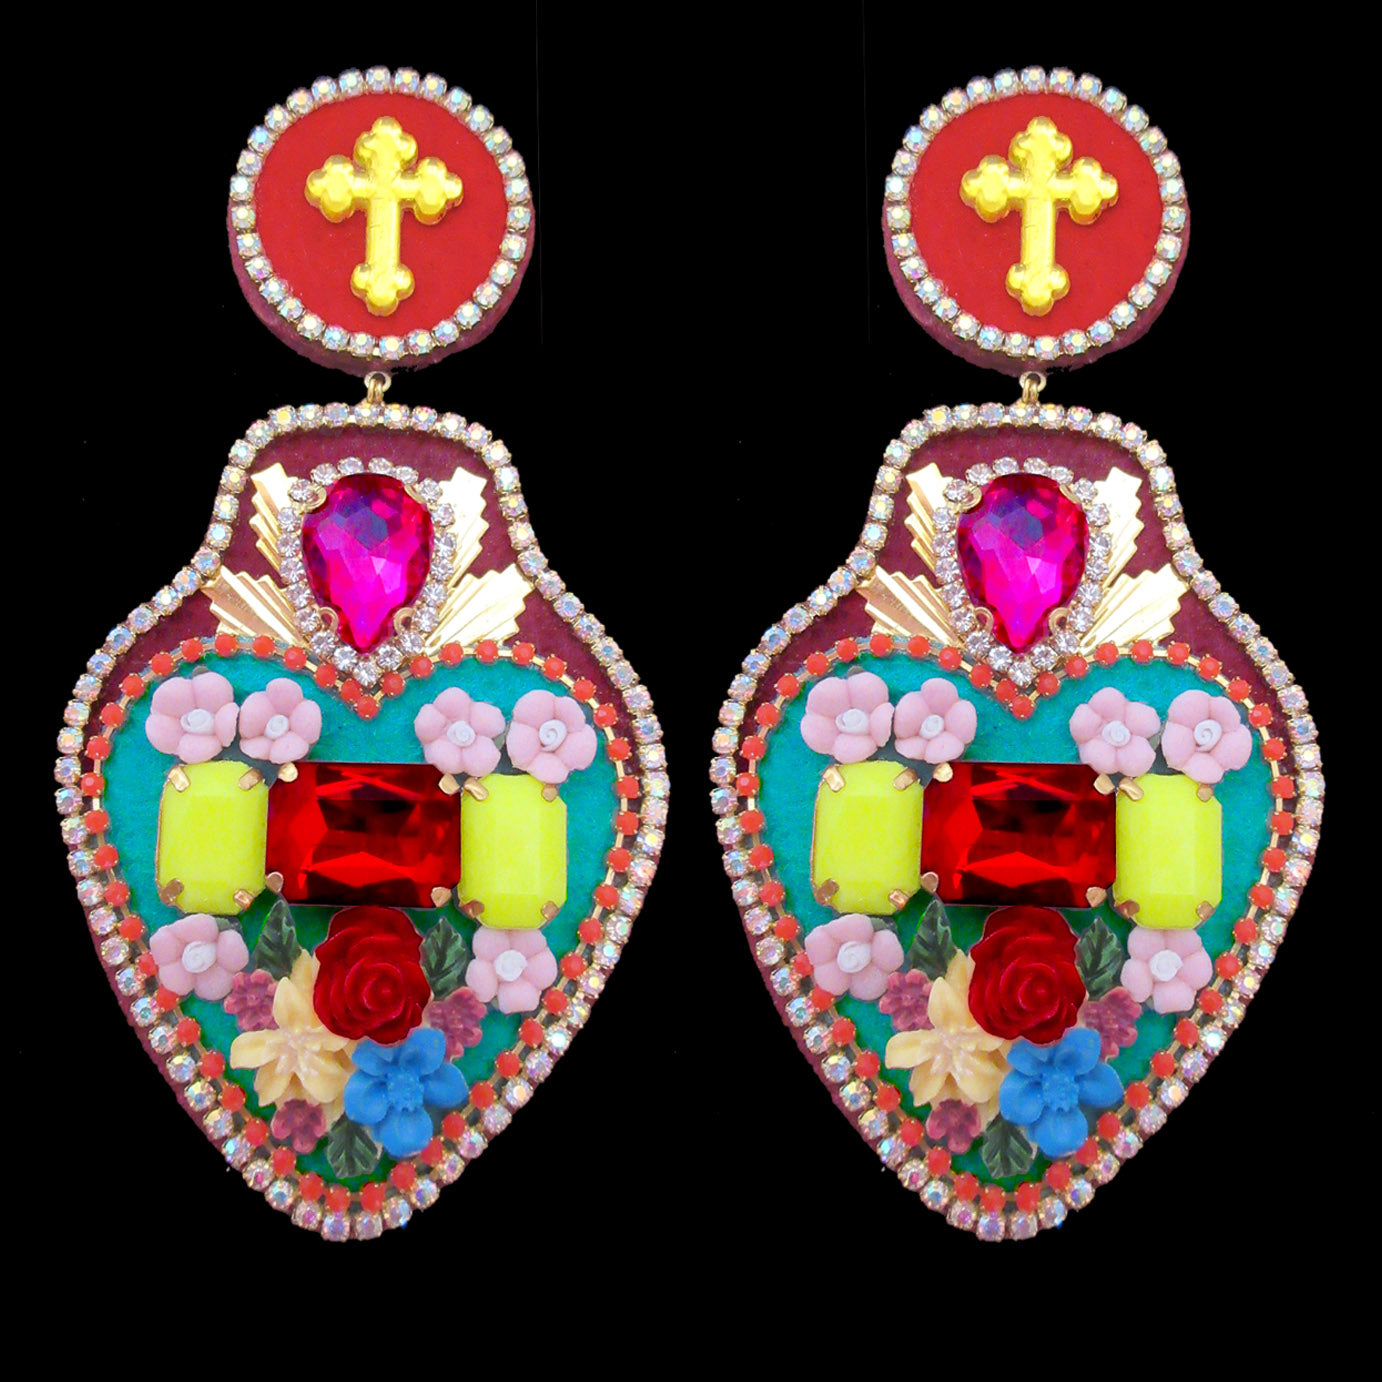 mouchkine jewelry handmade luxury exvoto statement earrings